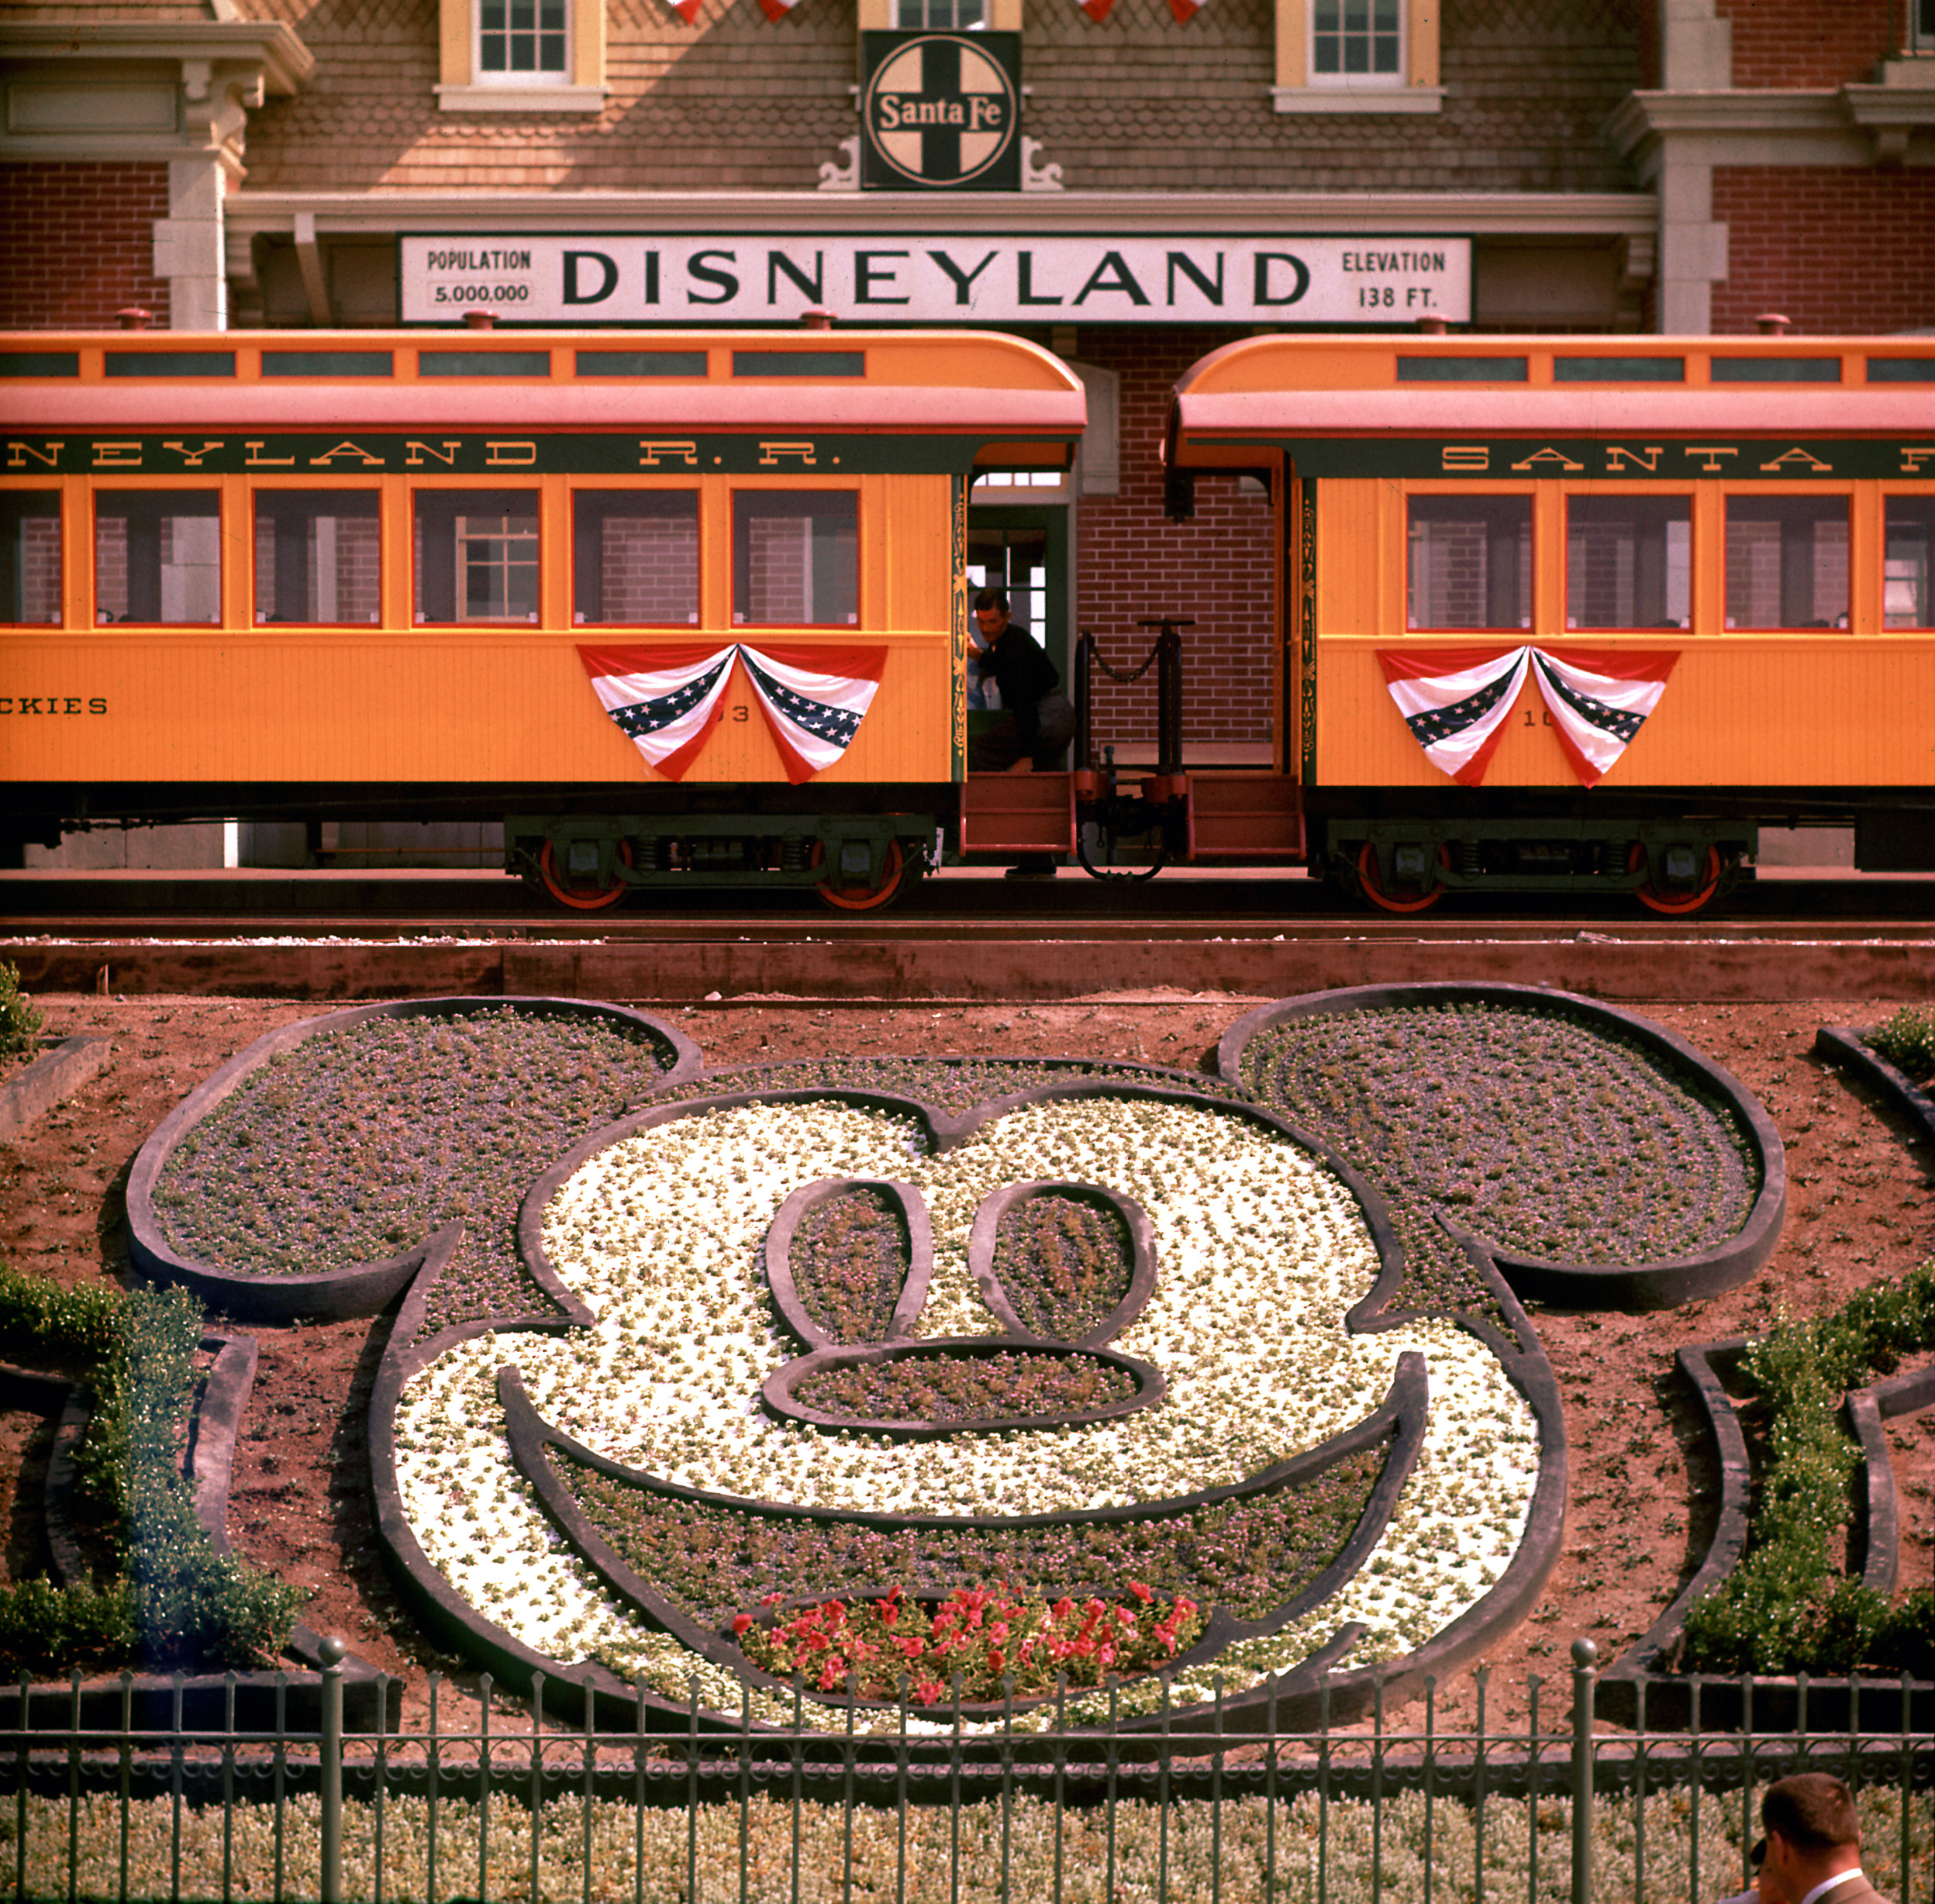 Planted flowers forming design of Mickey Mouse's face, with Disneyland train in background, 1955.